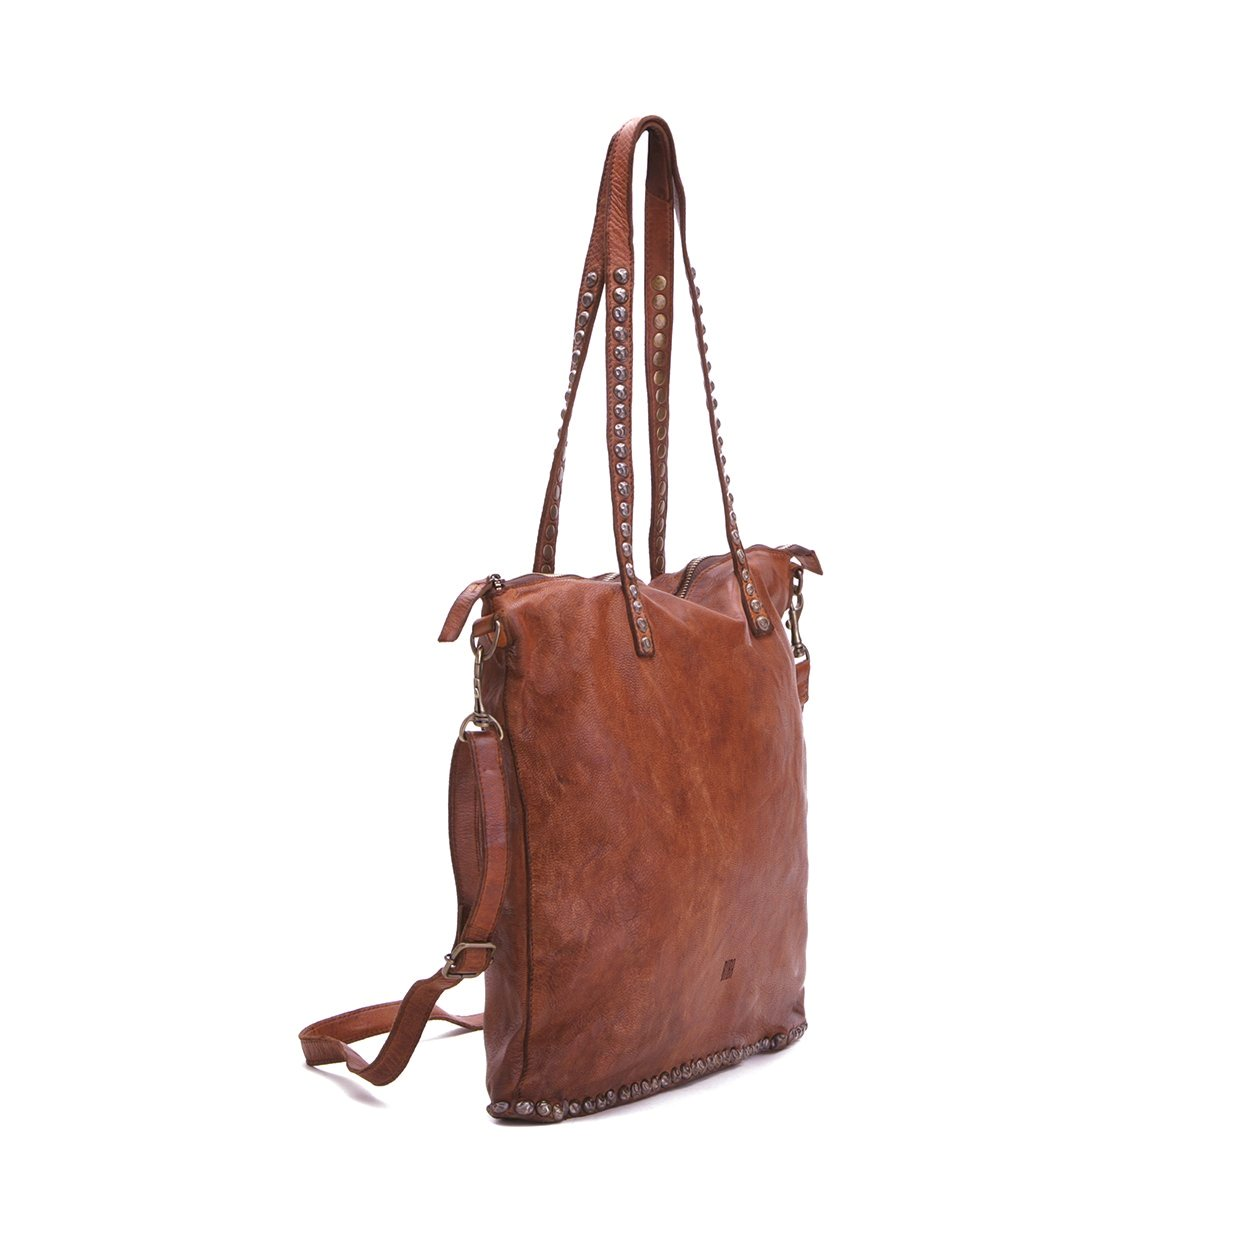 Veske Sofia. Shopper. Tan